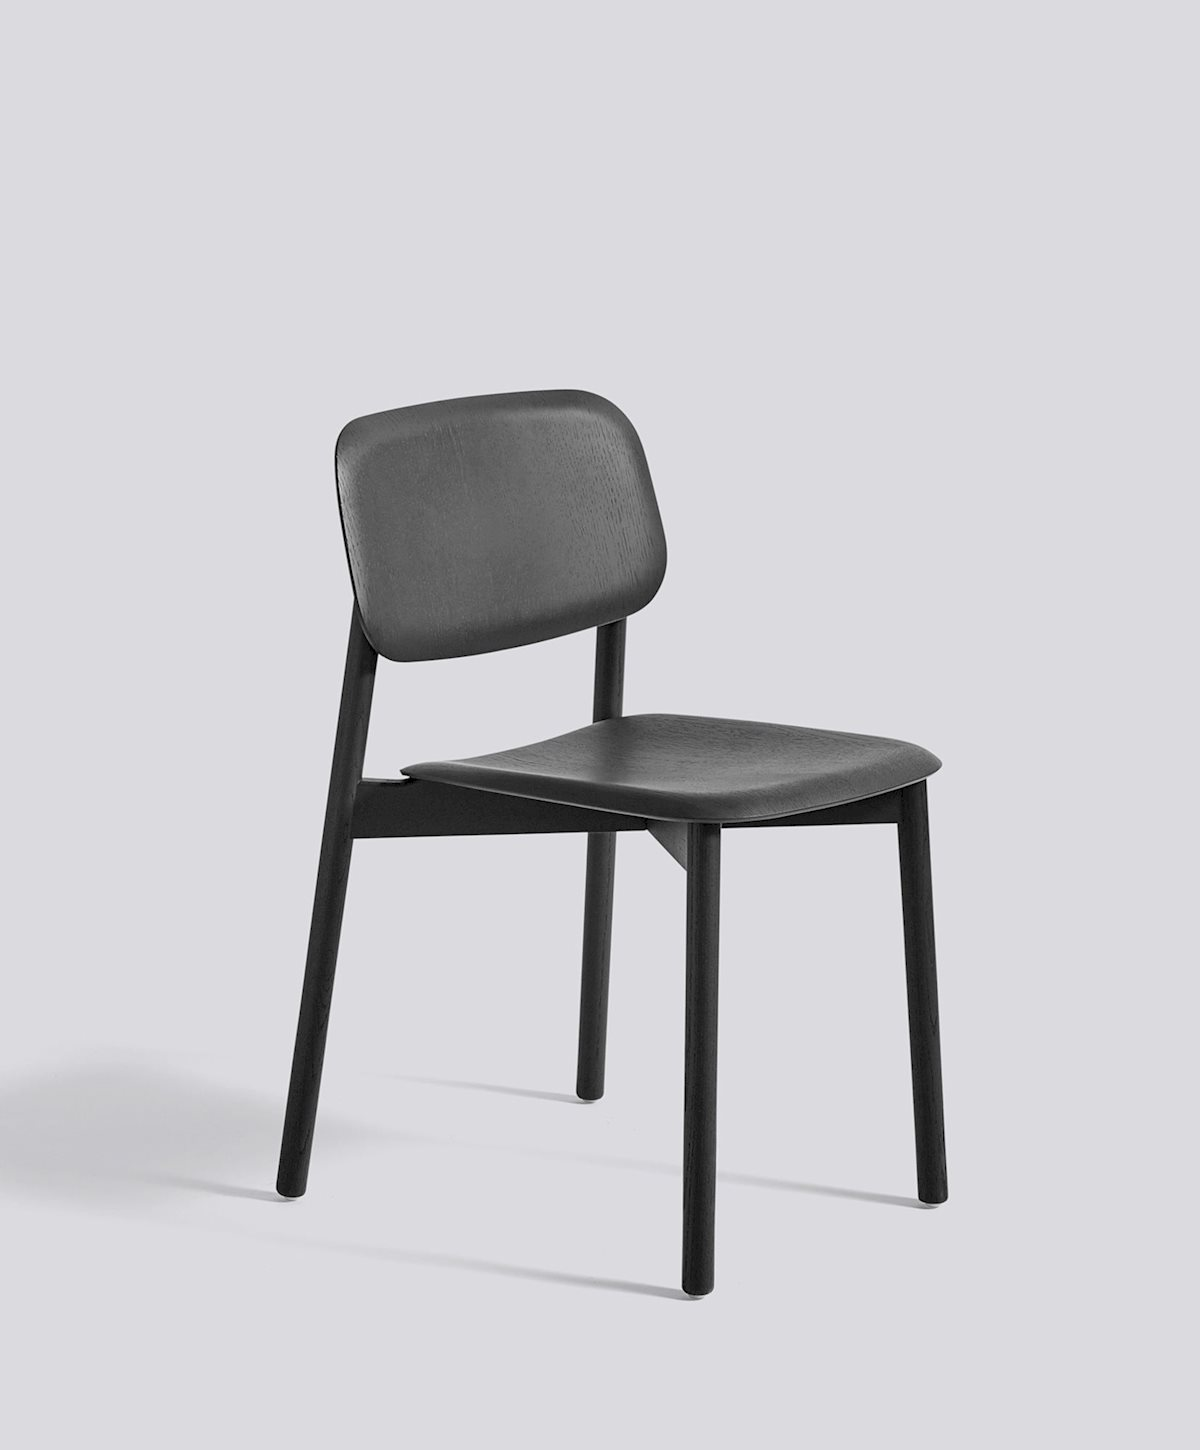 Soft Edge12 Chair - 5